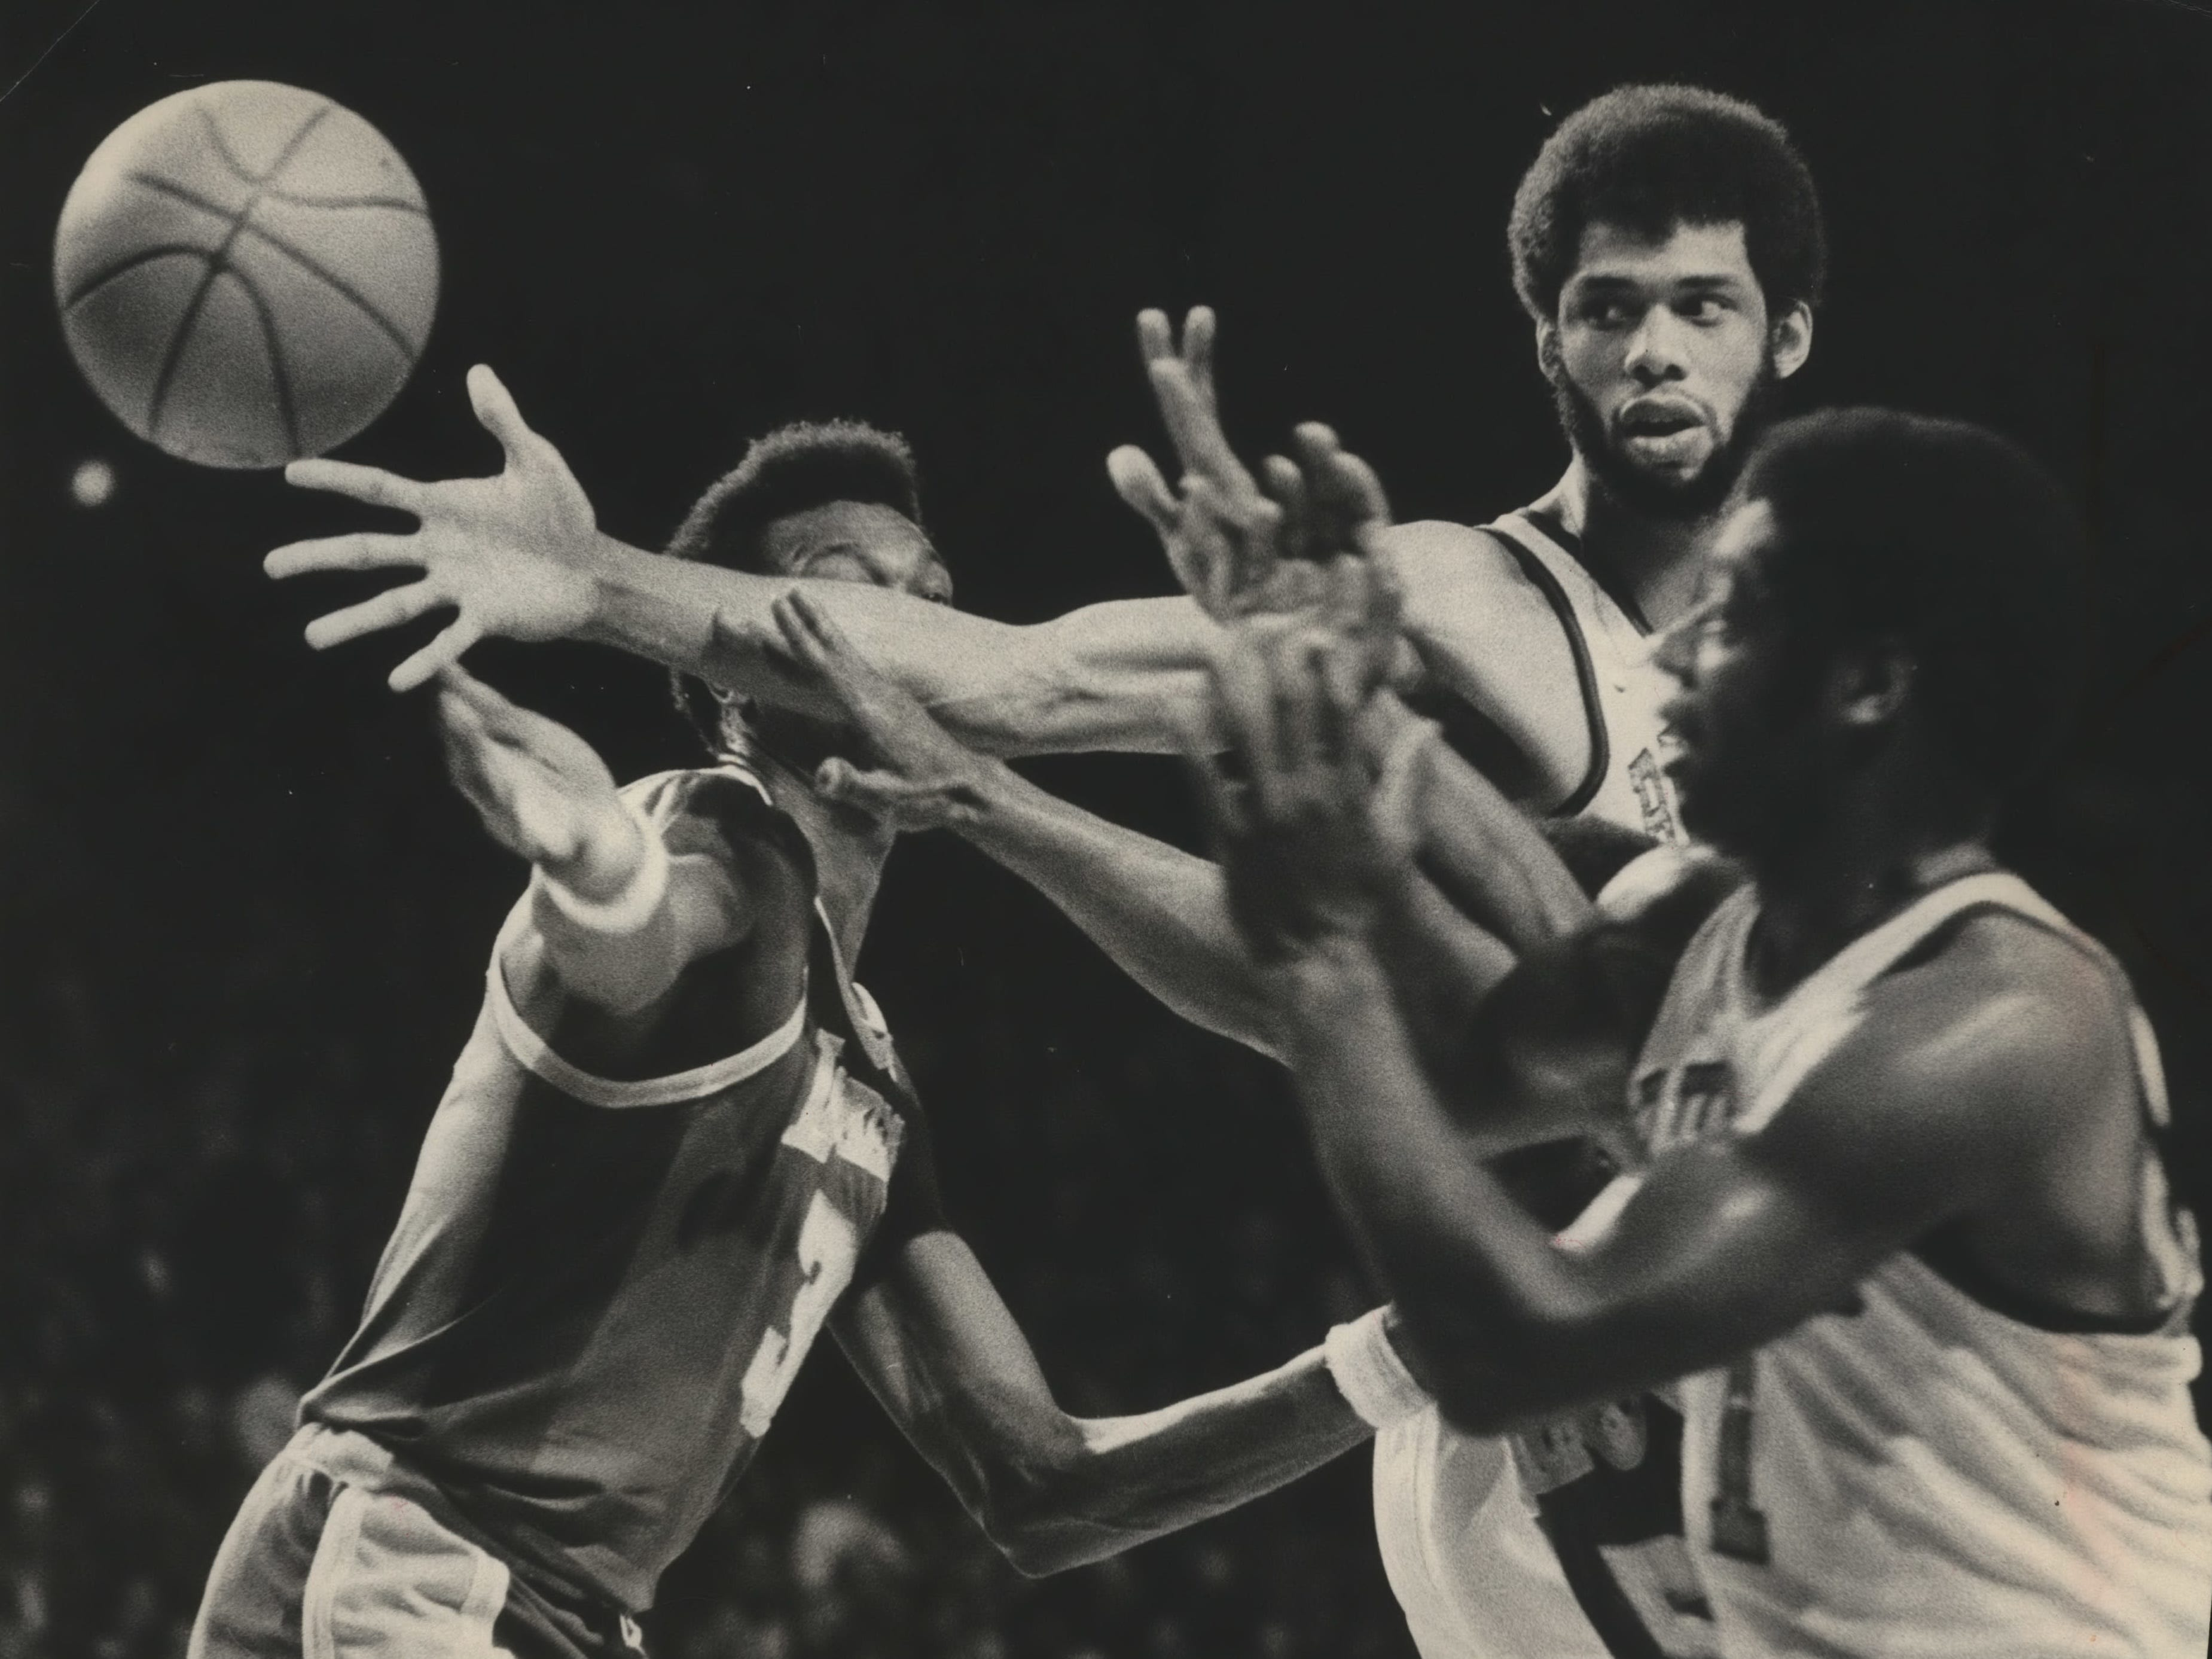 Kareem Abdul-Jabbar reaches for the ball past Los Angeles' Elmore Smith and Bucks guard Oscar Robertson during the  Game 5 of the first round of the NBA playoffs on April 7, 1974. Milwaukee beat the Lakers, 114-92, and won the series. The Bucks won the Western Conference title but lost the NBA finals in seven games to the Boston Celtics. This photo was published in the April 8, 1974, Milwaukee Sentinel.